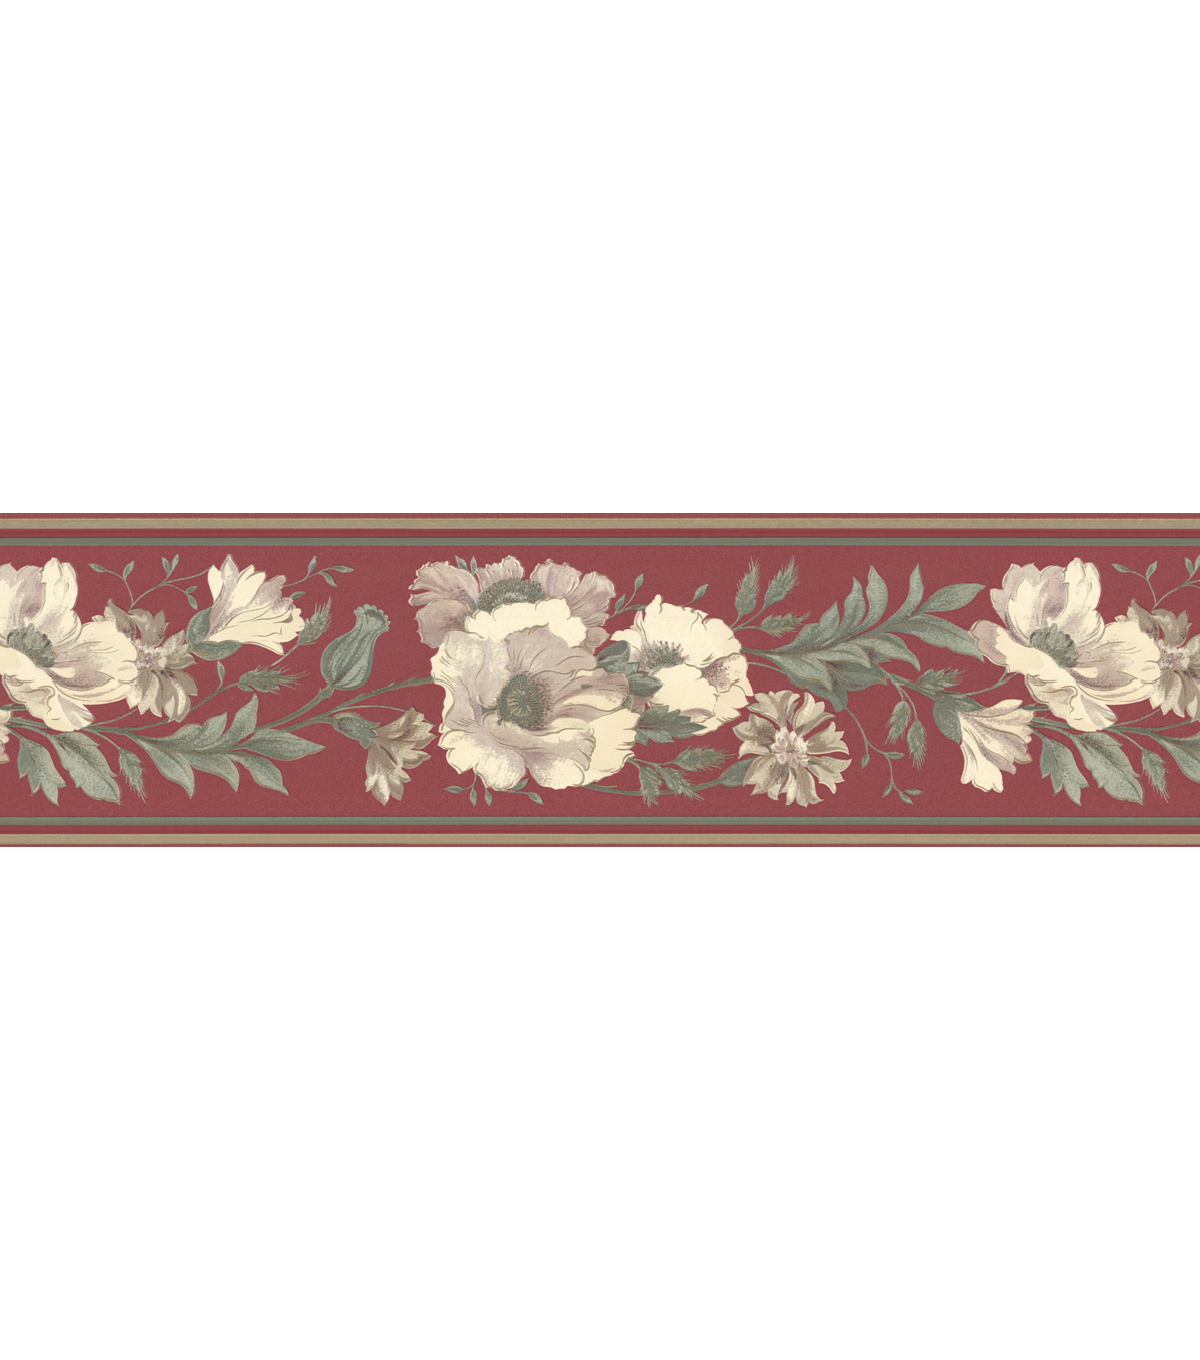 Floral Trail Wallpaper Border, Red